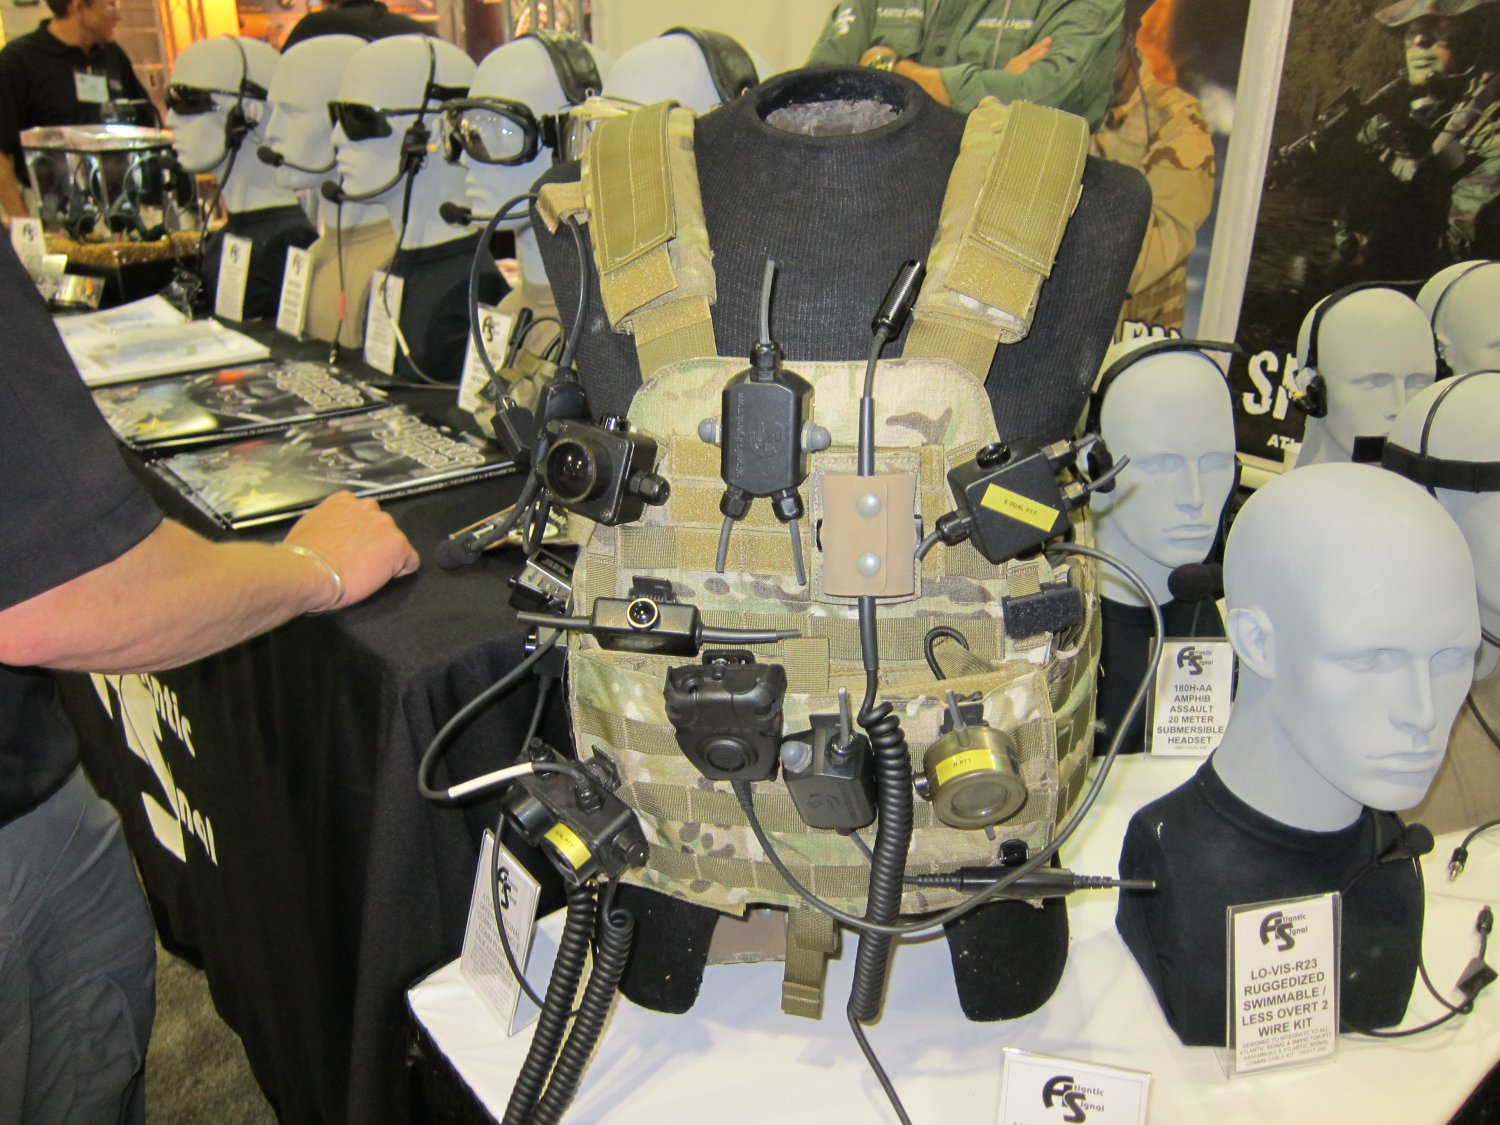 Atlantic Signal Custom Military LE Tactical Communications Headsets Tactical Comms Headsets Dominator 23 <!  :en  >DR Exclusive Interview!: Atlantic Signal (AS) Introducing The DOMINATOR Waterproof Bone Conduction/Hearing Pro Military Tactical Communications Headset System at SOFIC 2011: Ultimate Custom Built Tactical Comms Headset for U.S. Military Special Operations Forces (SOF) Assaulters/Operators (Photos!)<!  :  >